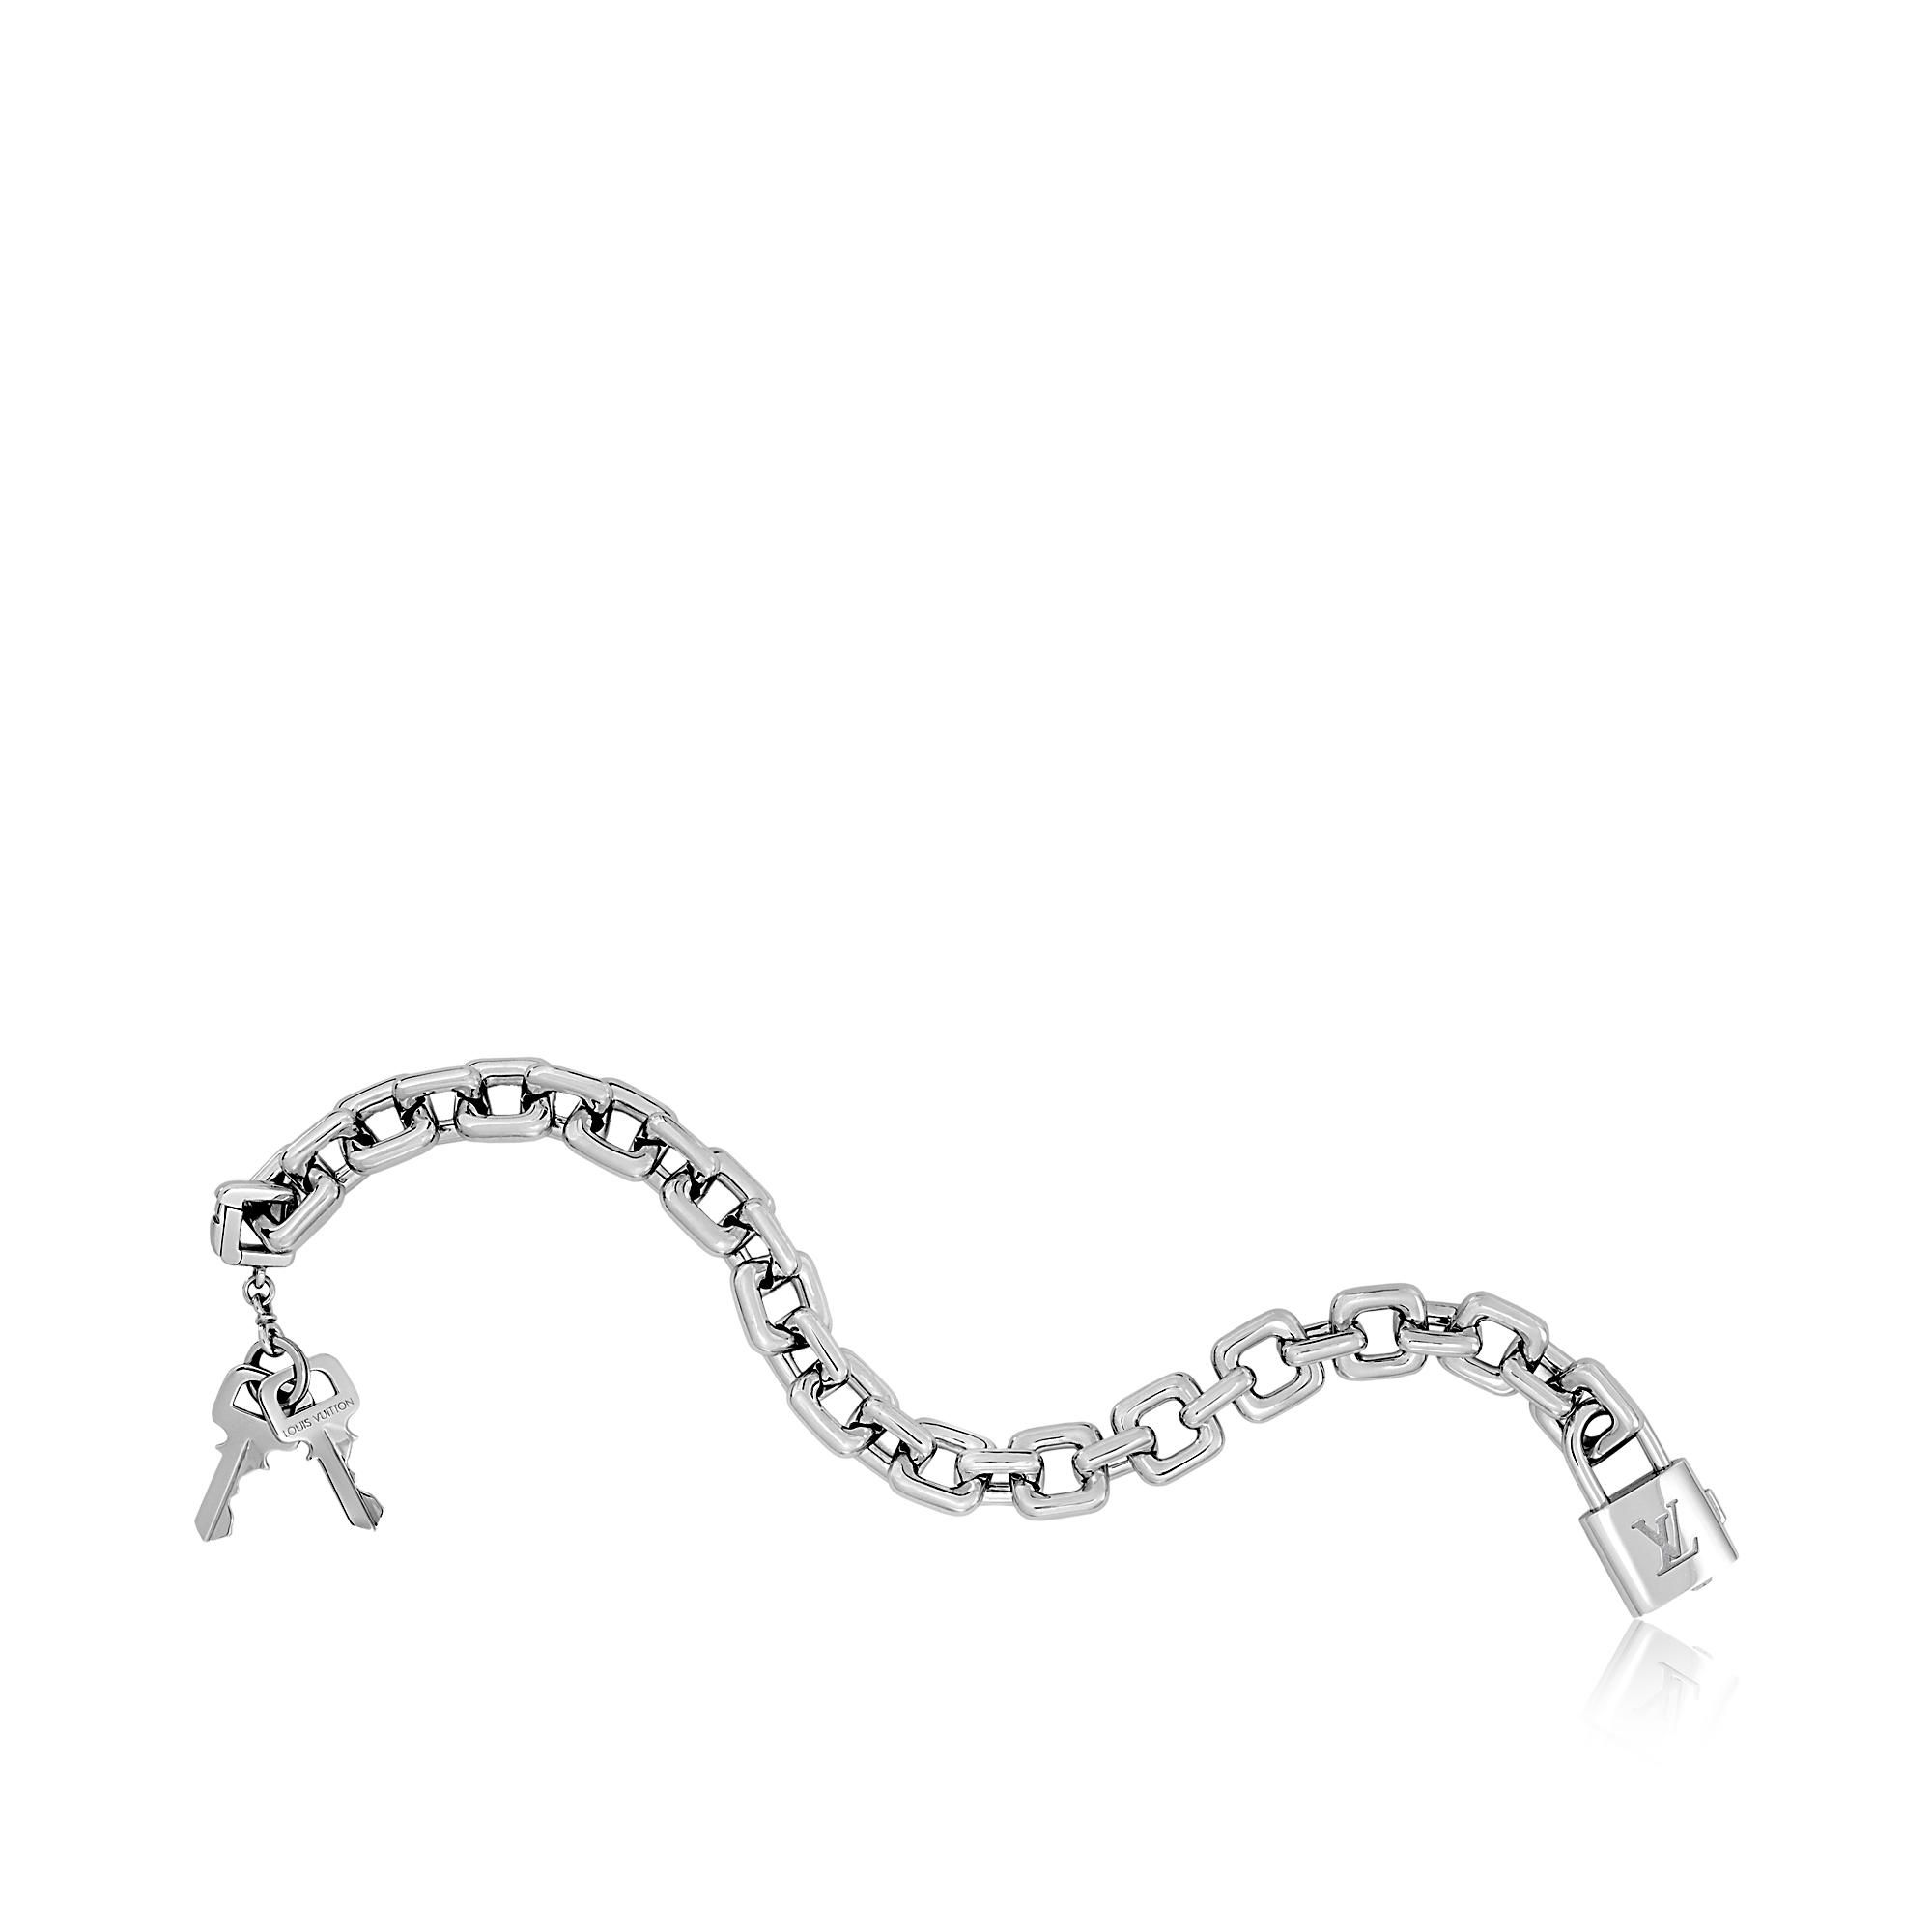 Discover louis vuitton padlock and keys charm bracelet in white gold